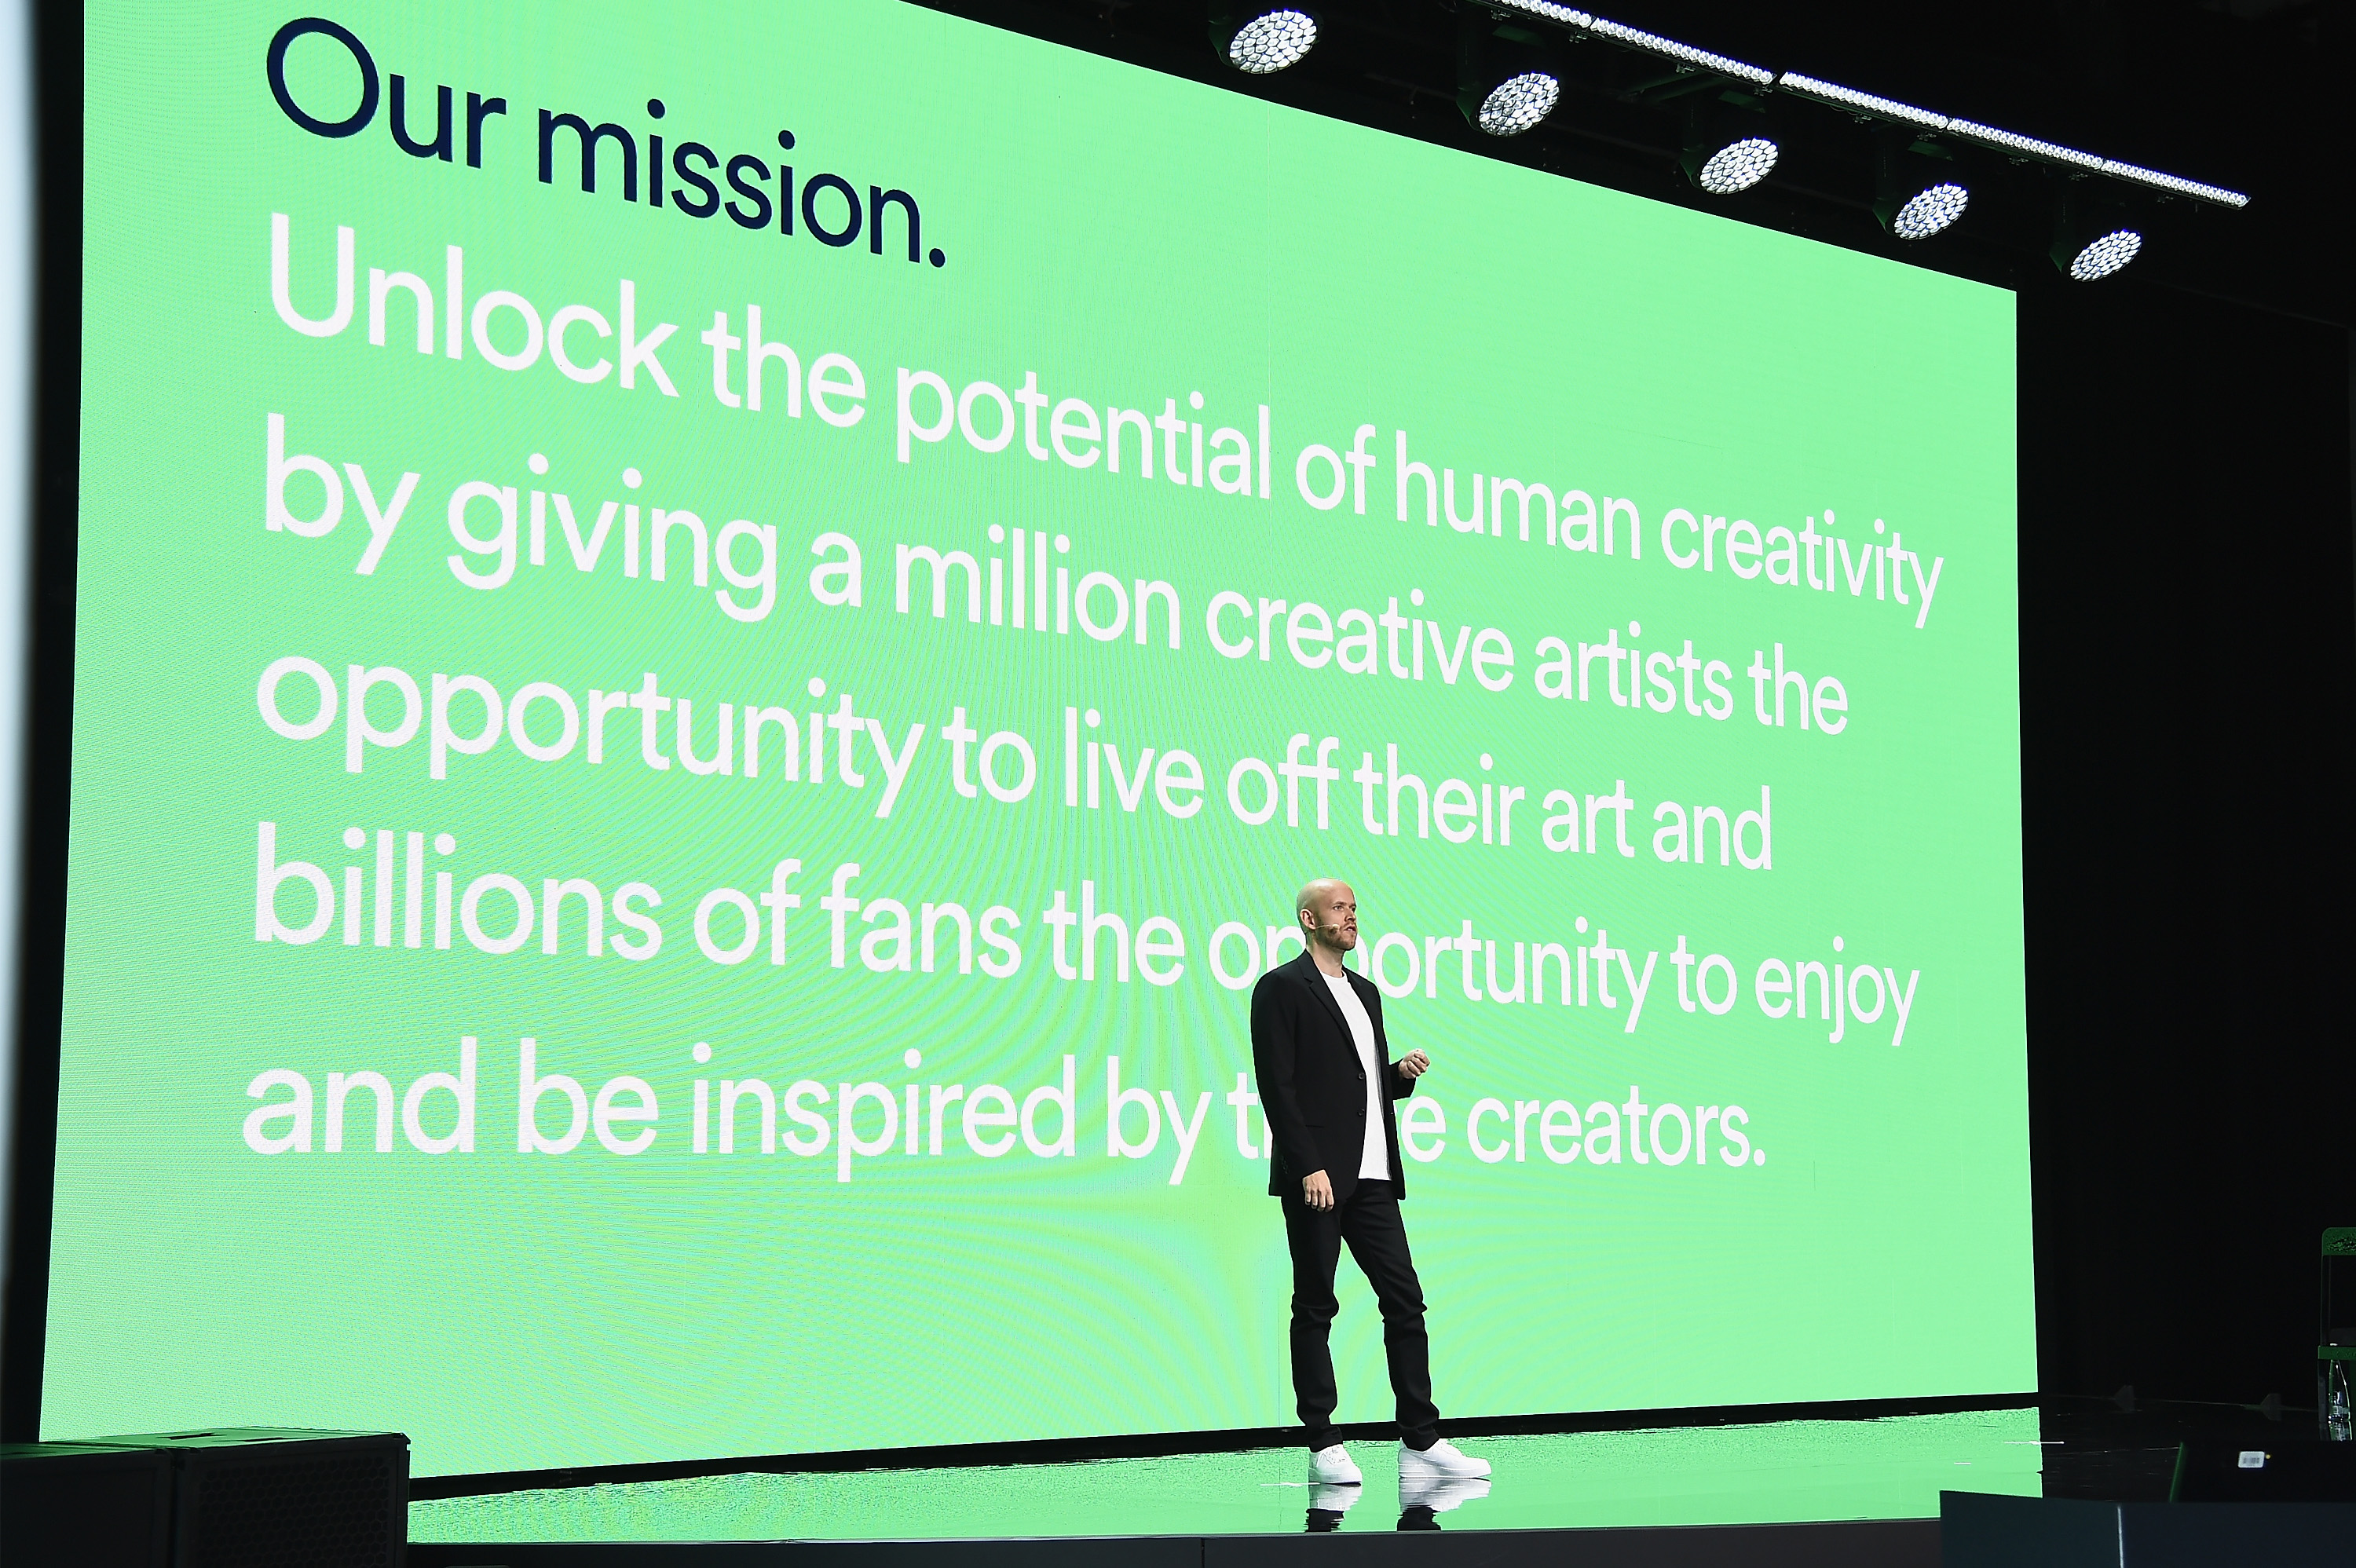 """Daniel Ek, founder and CEO of Spotify, speaks onstage during Spotify Investor Day in front of a screen that reads, """"Our mission: Unlock the potential of human capability by giving a million creative artists the opportunity to live off their art and billio"""